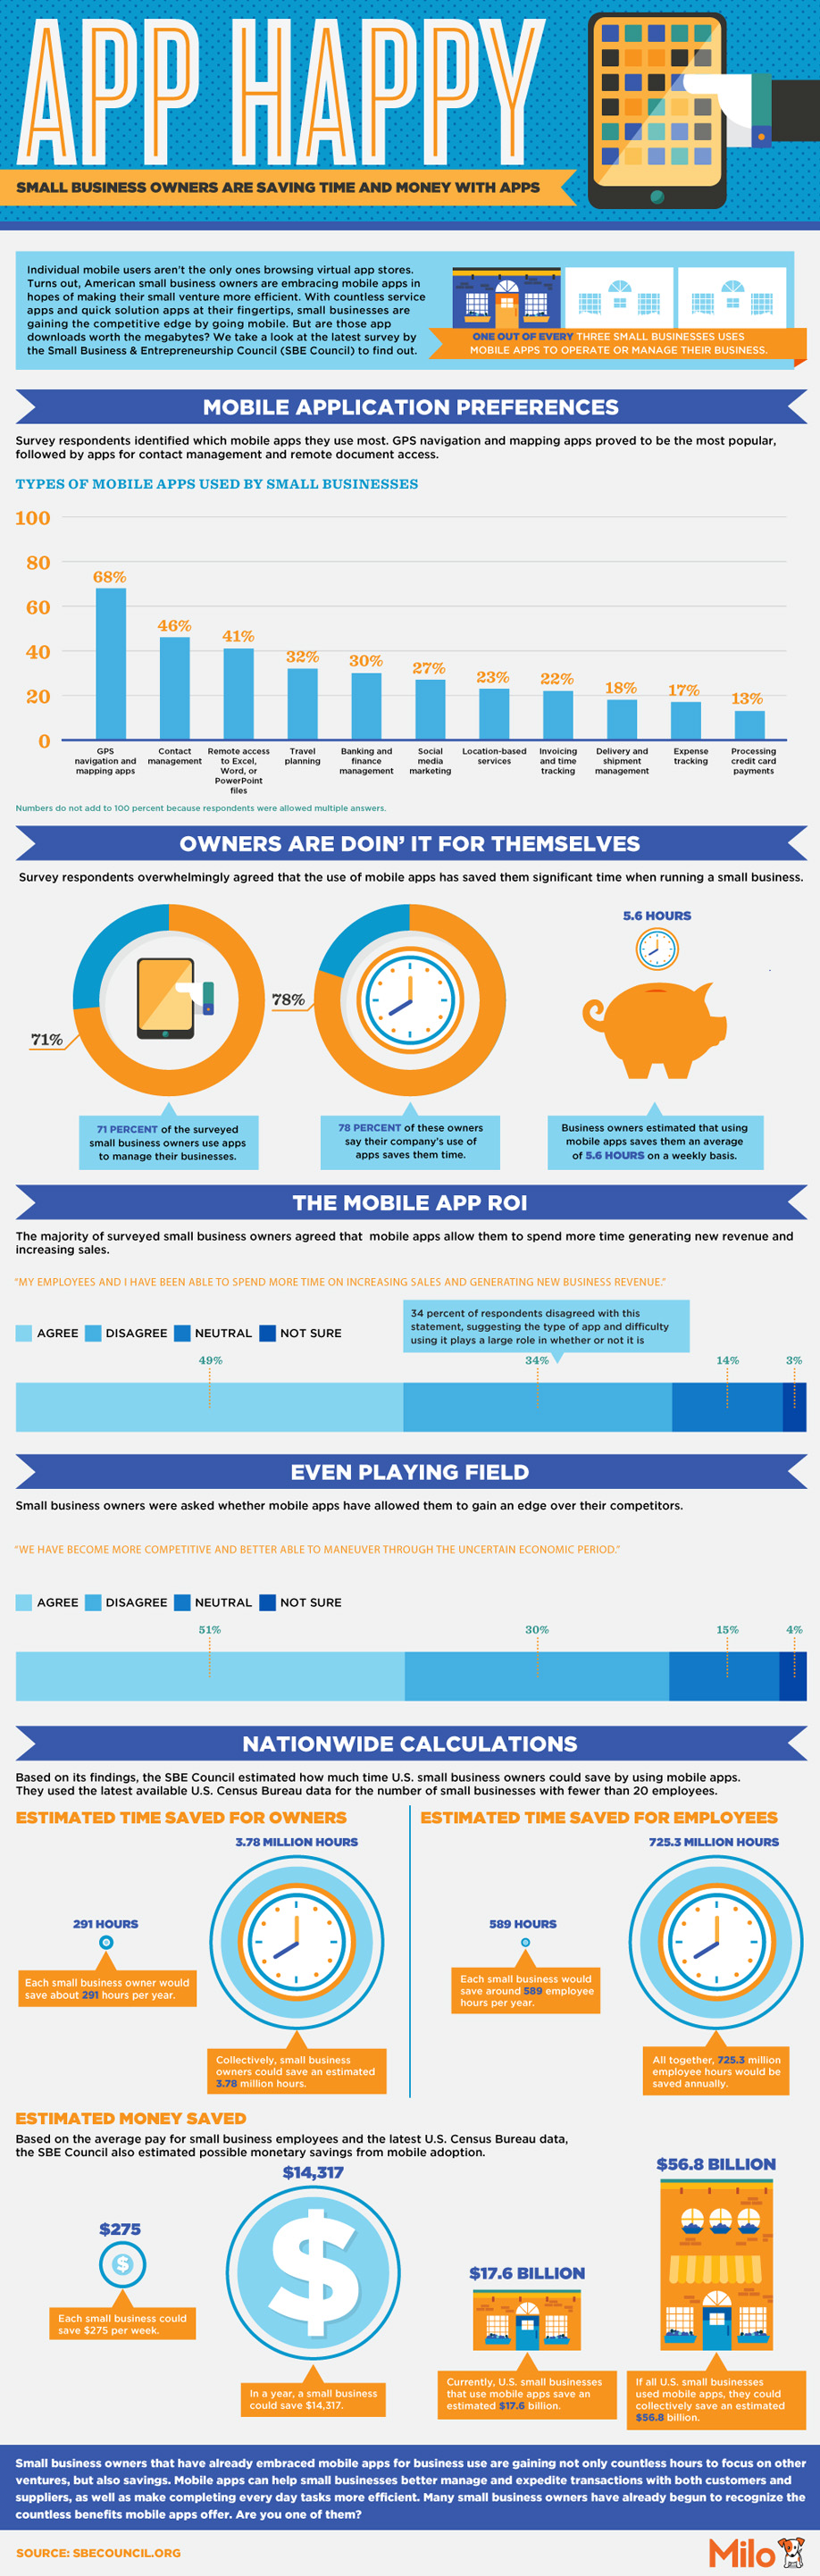 Infographic: App Happy: Small Business Owners Are Saving Time and Money with Apps